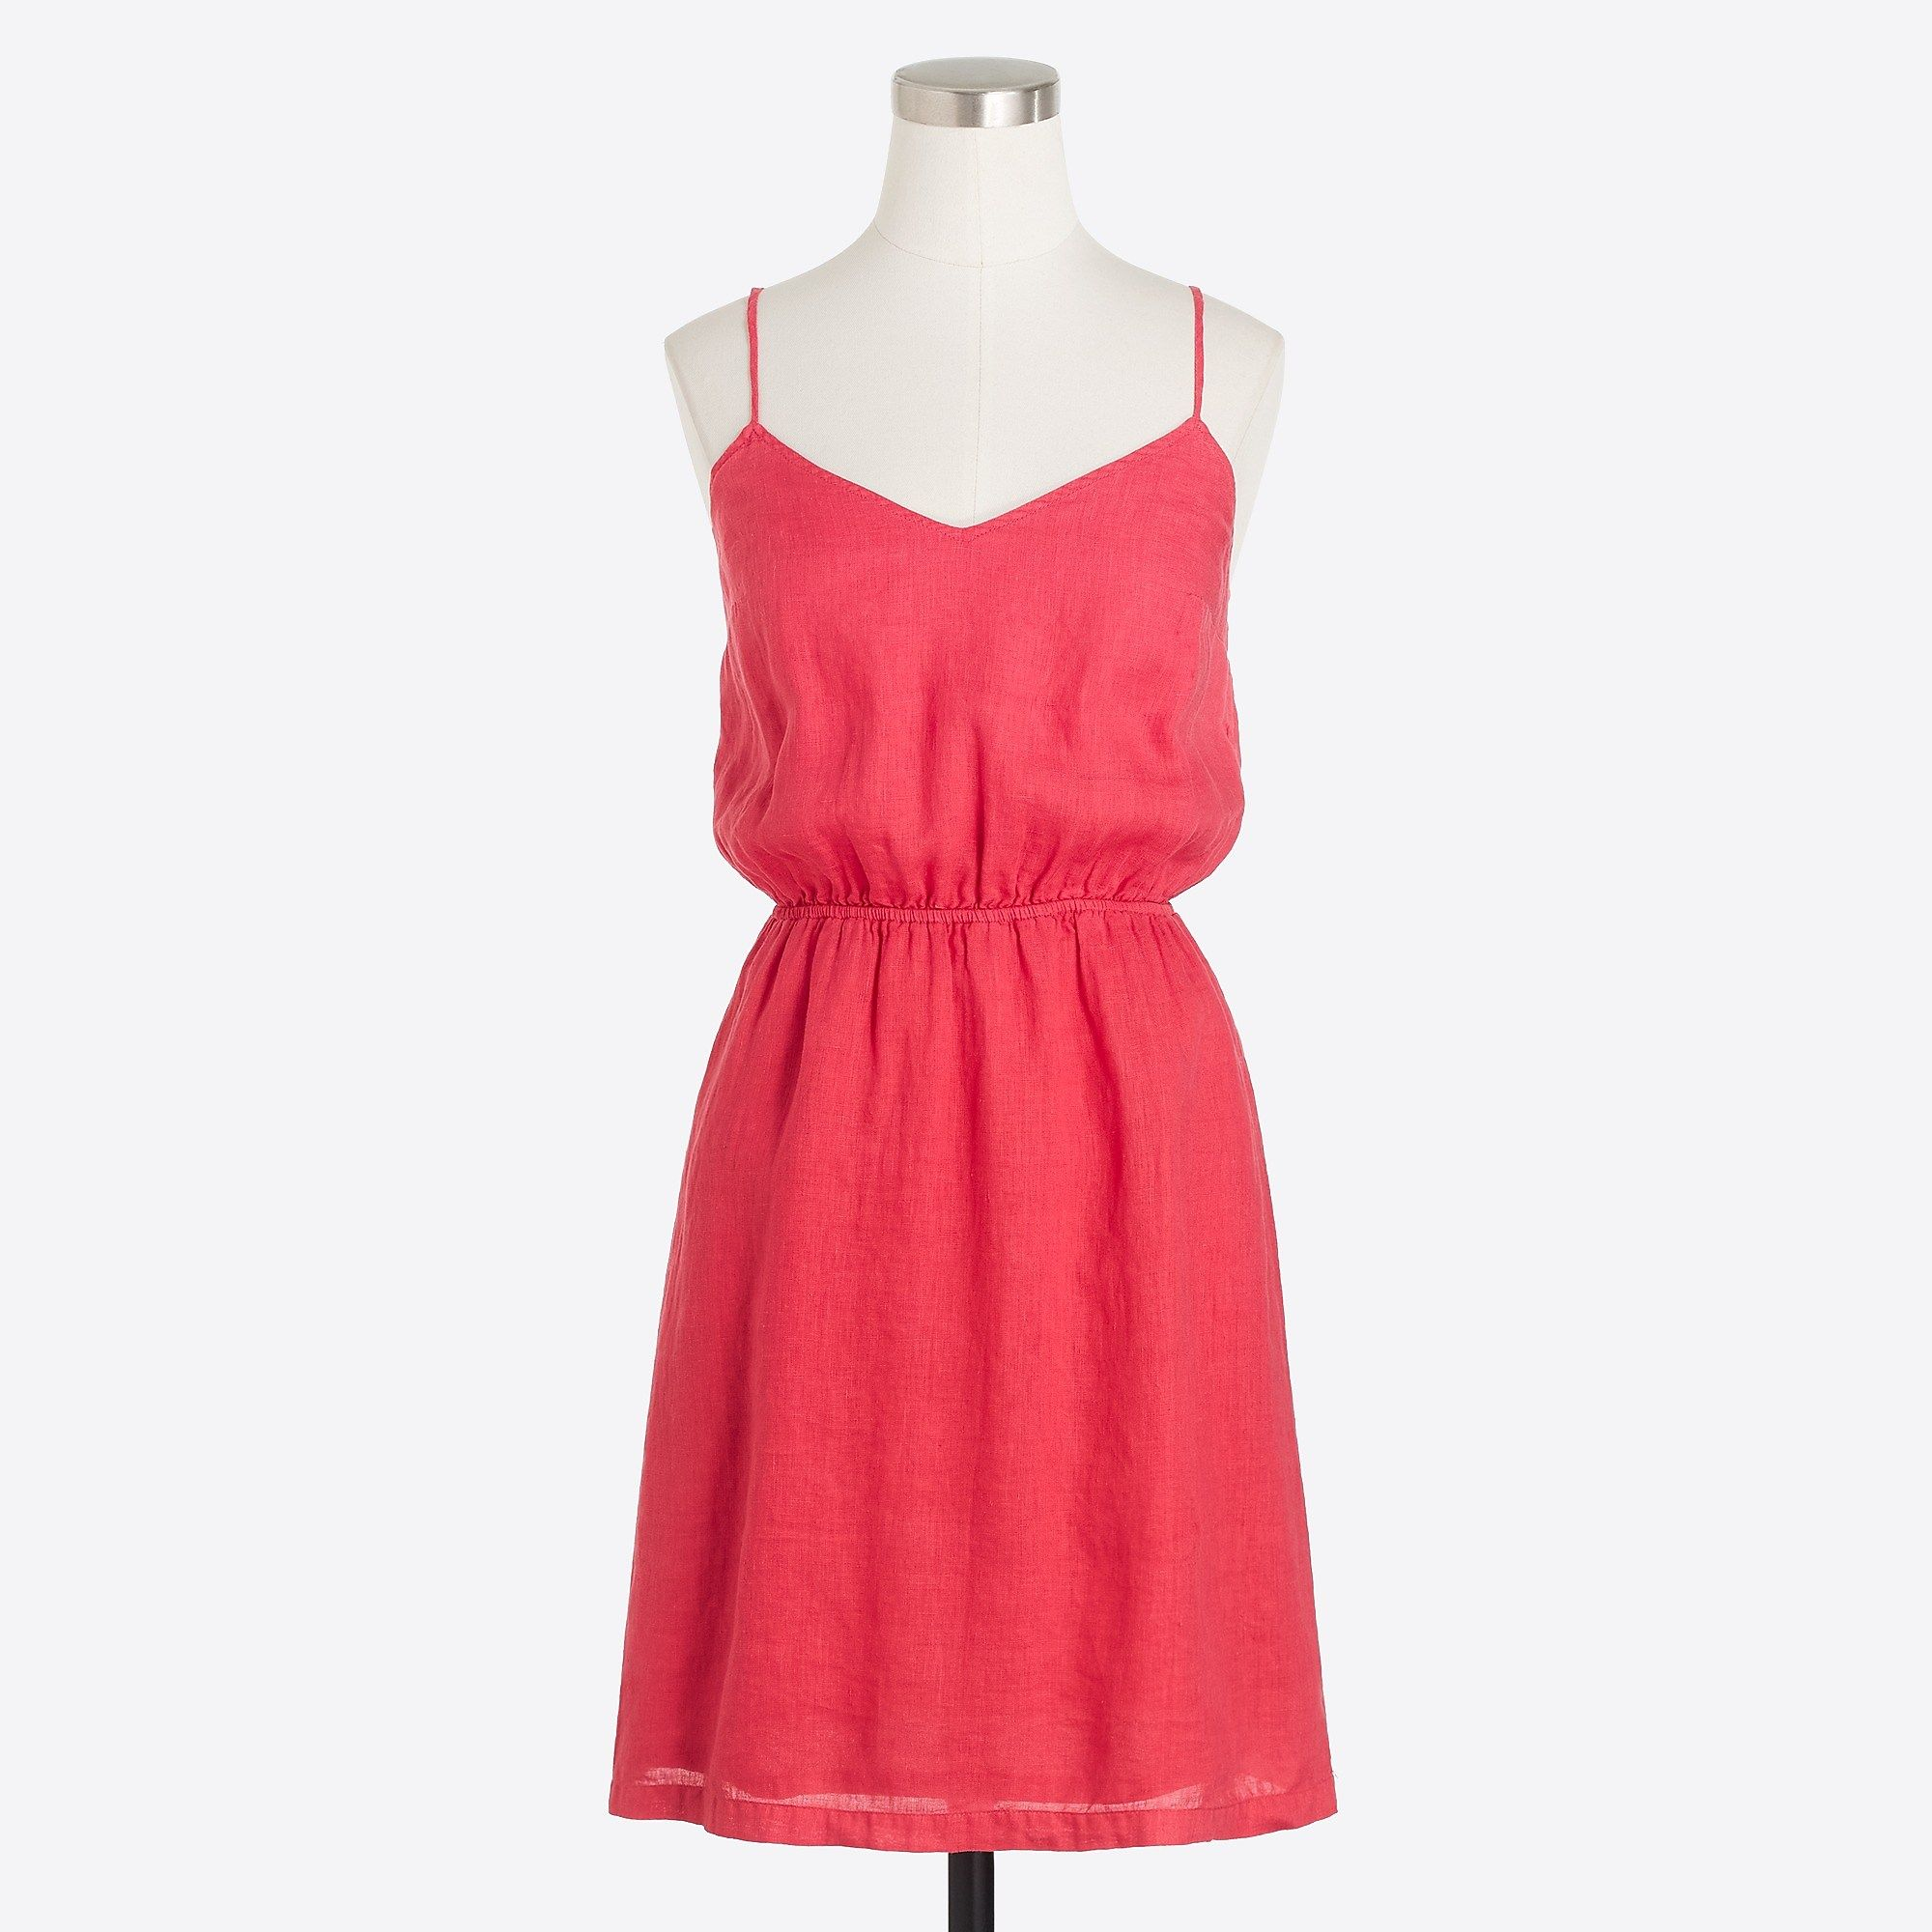 j crew linen cami dress cami dress casual dresses on cheap insulated coveralls for men id=89539